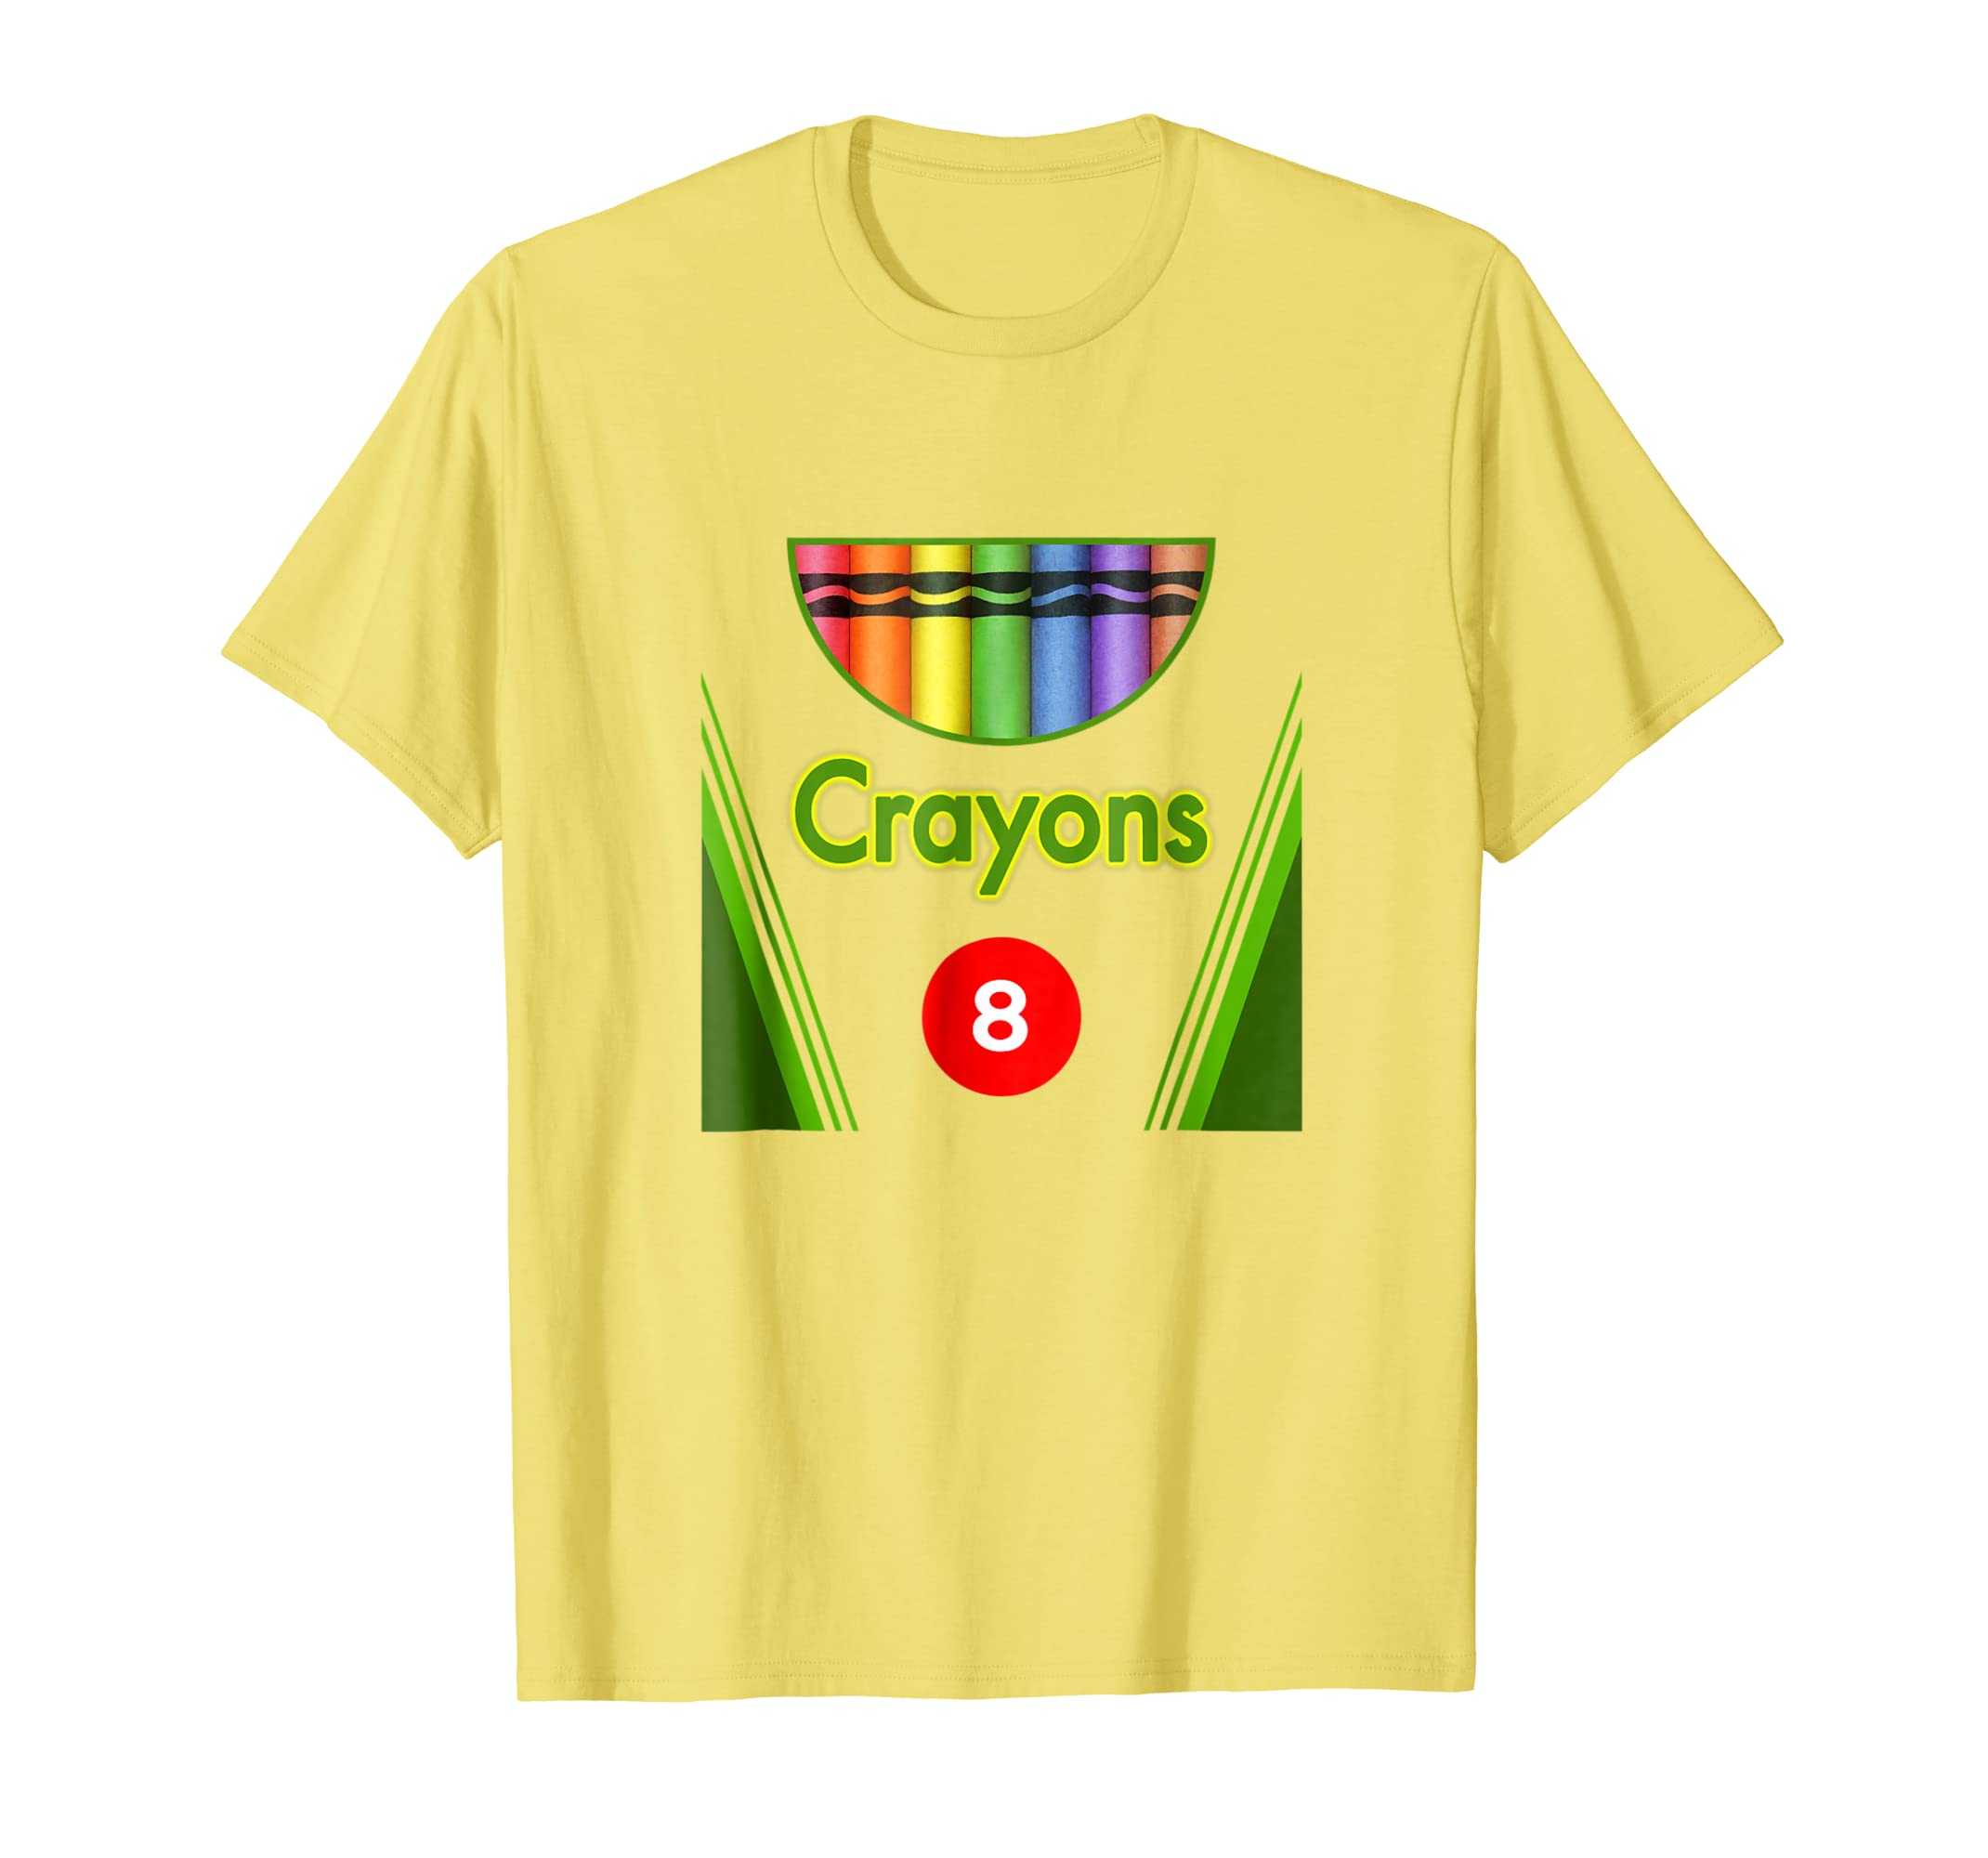 Amazon.com  Crayon Box of 8 Costume Halloween T-Shirt  Clothing c8db06639d2